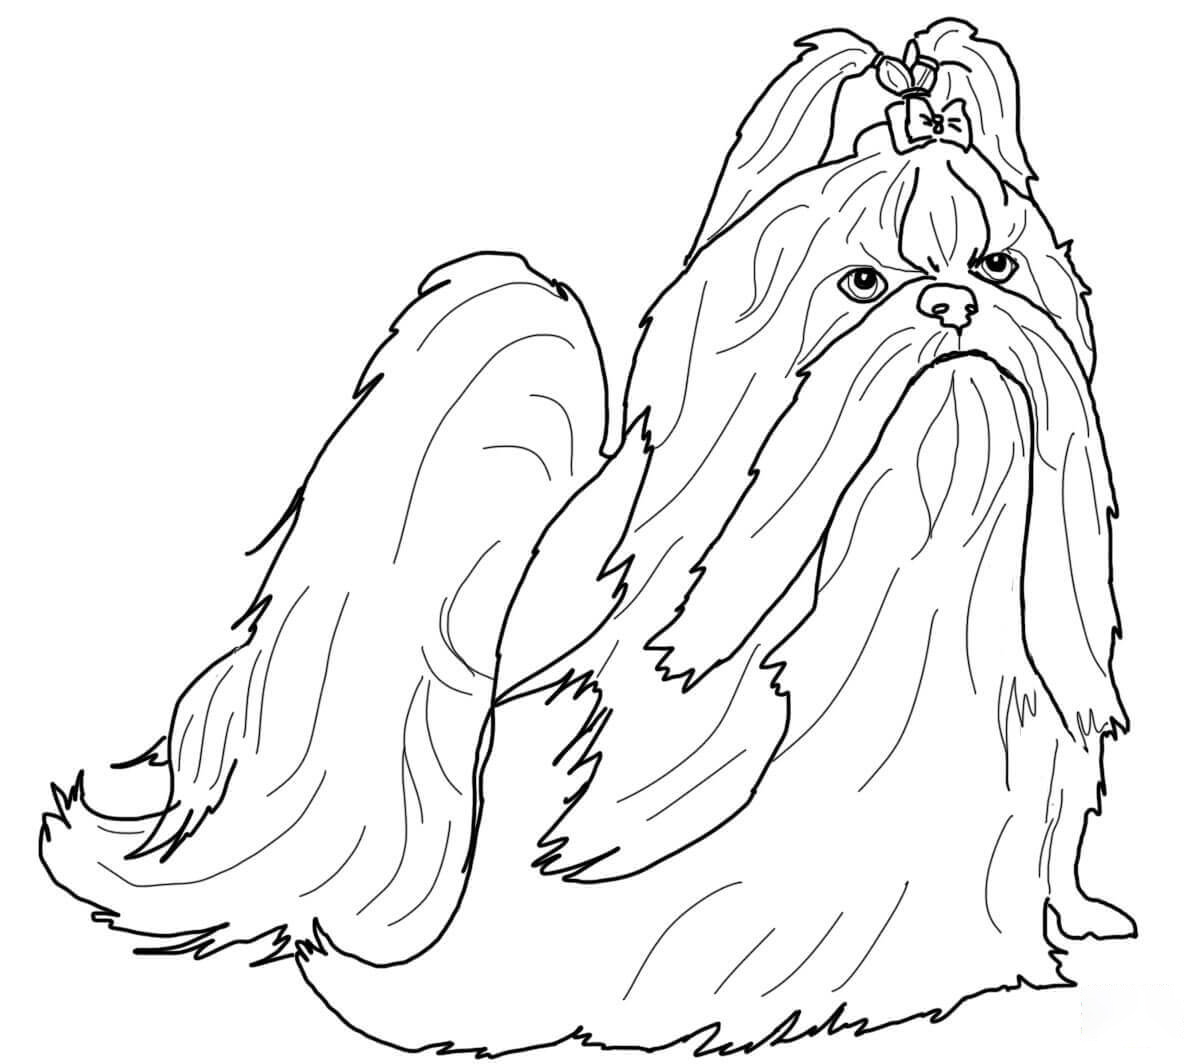 Shih-tzu in show coat Coloring Page